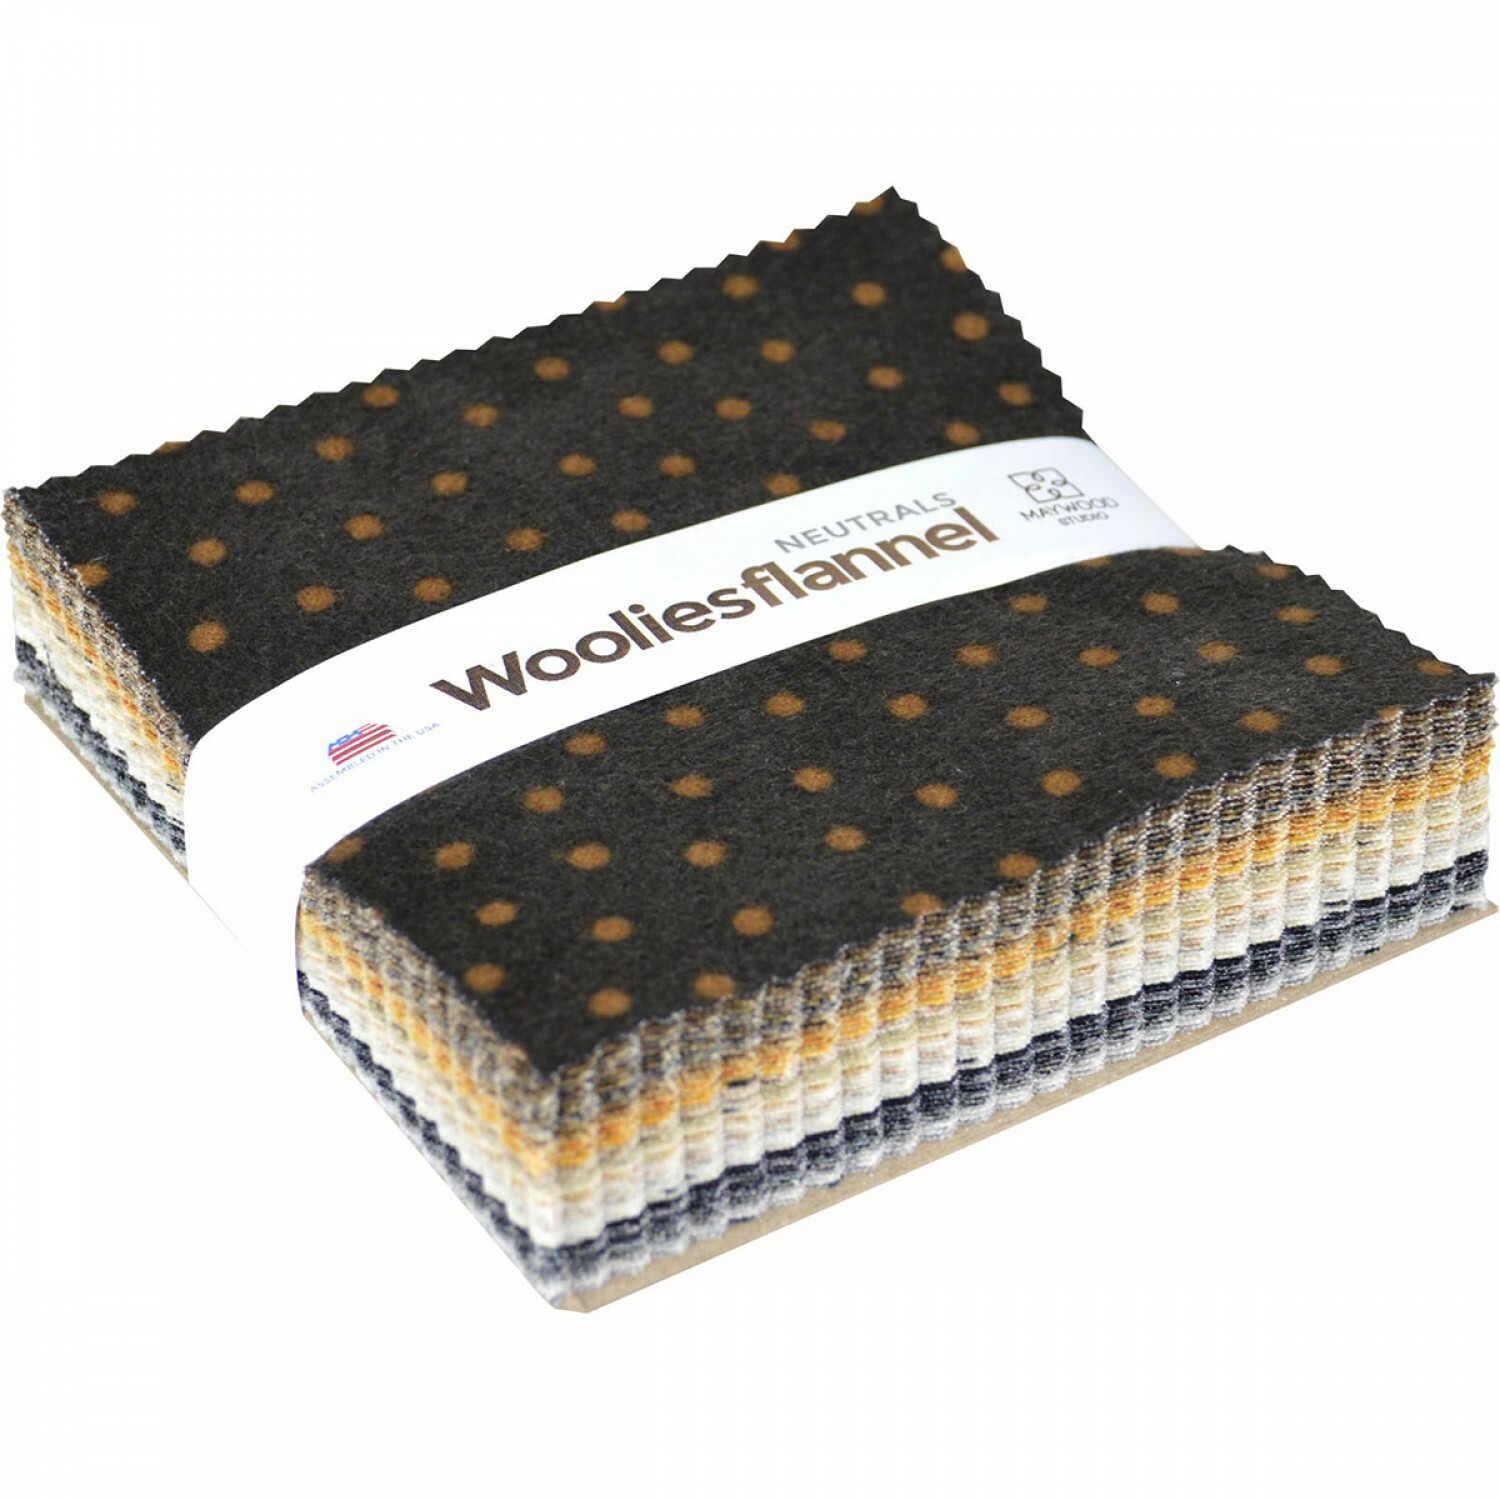 Woolies Flannel Charm Pack - Neutral FH5HK5L7